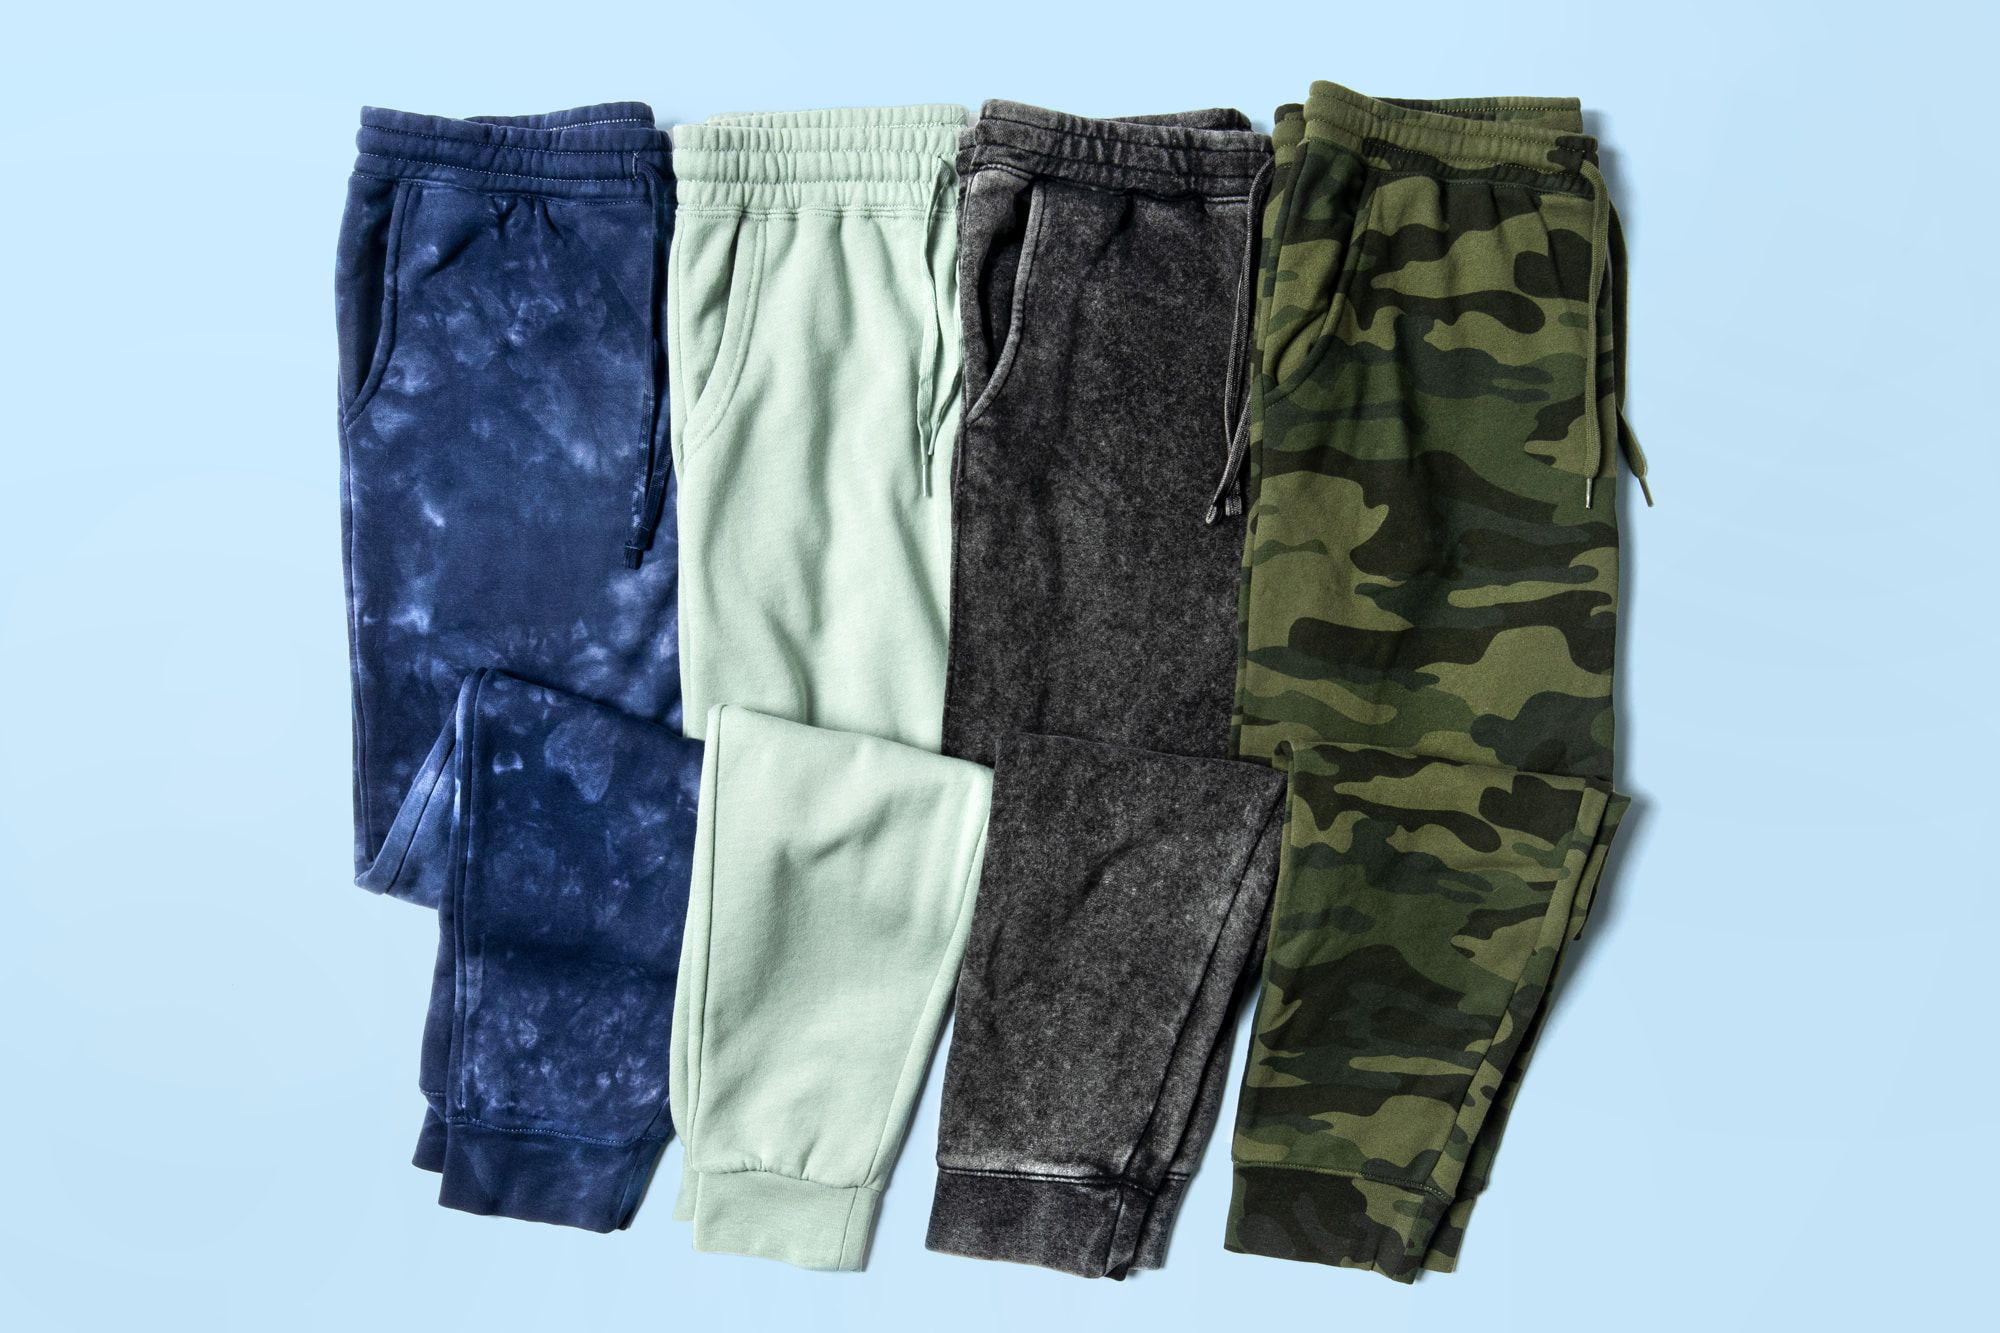 Flatlay image showing example of cuffed sweatpants.